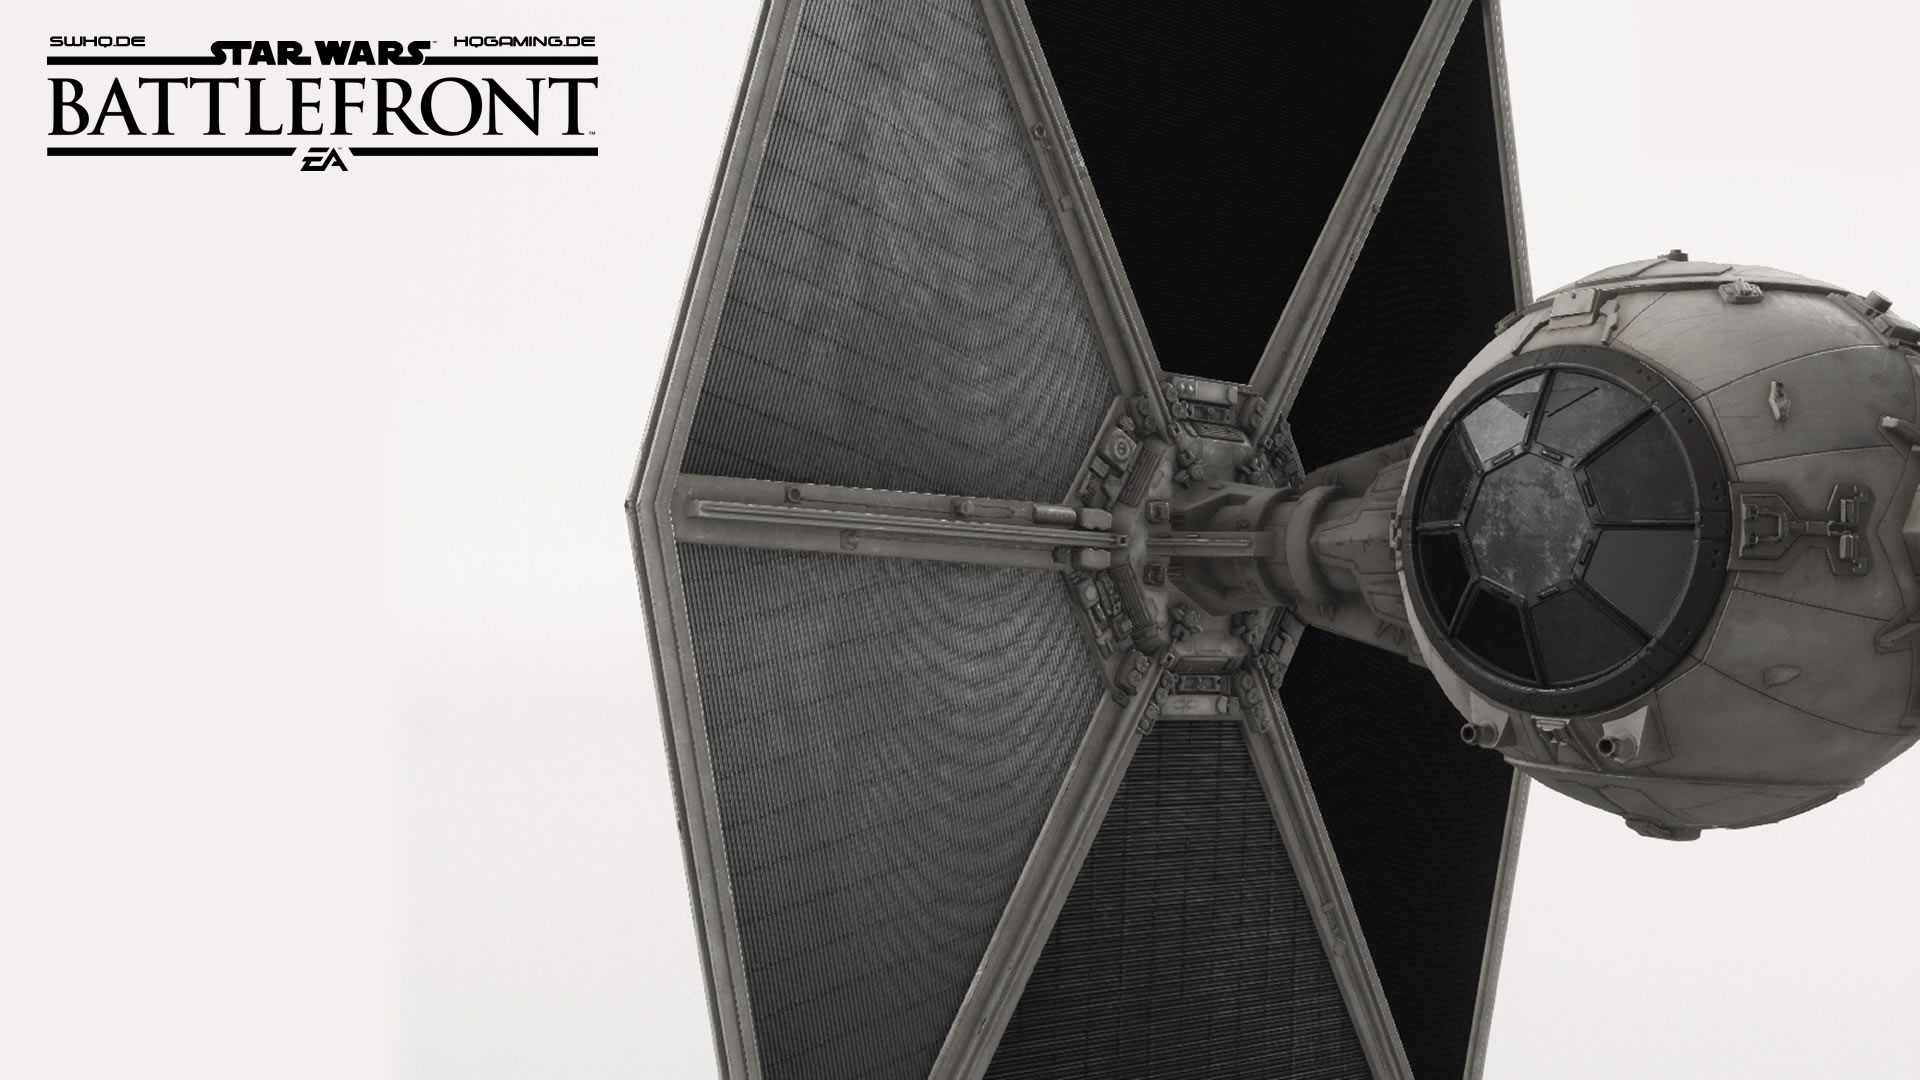 Neue Wallpaper zu STAR WARS Battlefront in Full HD